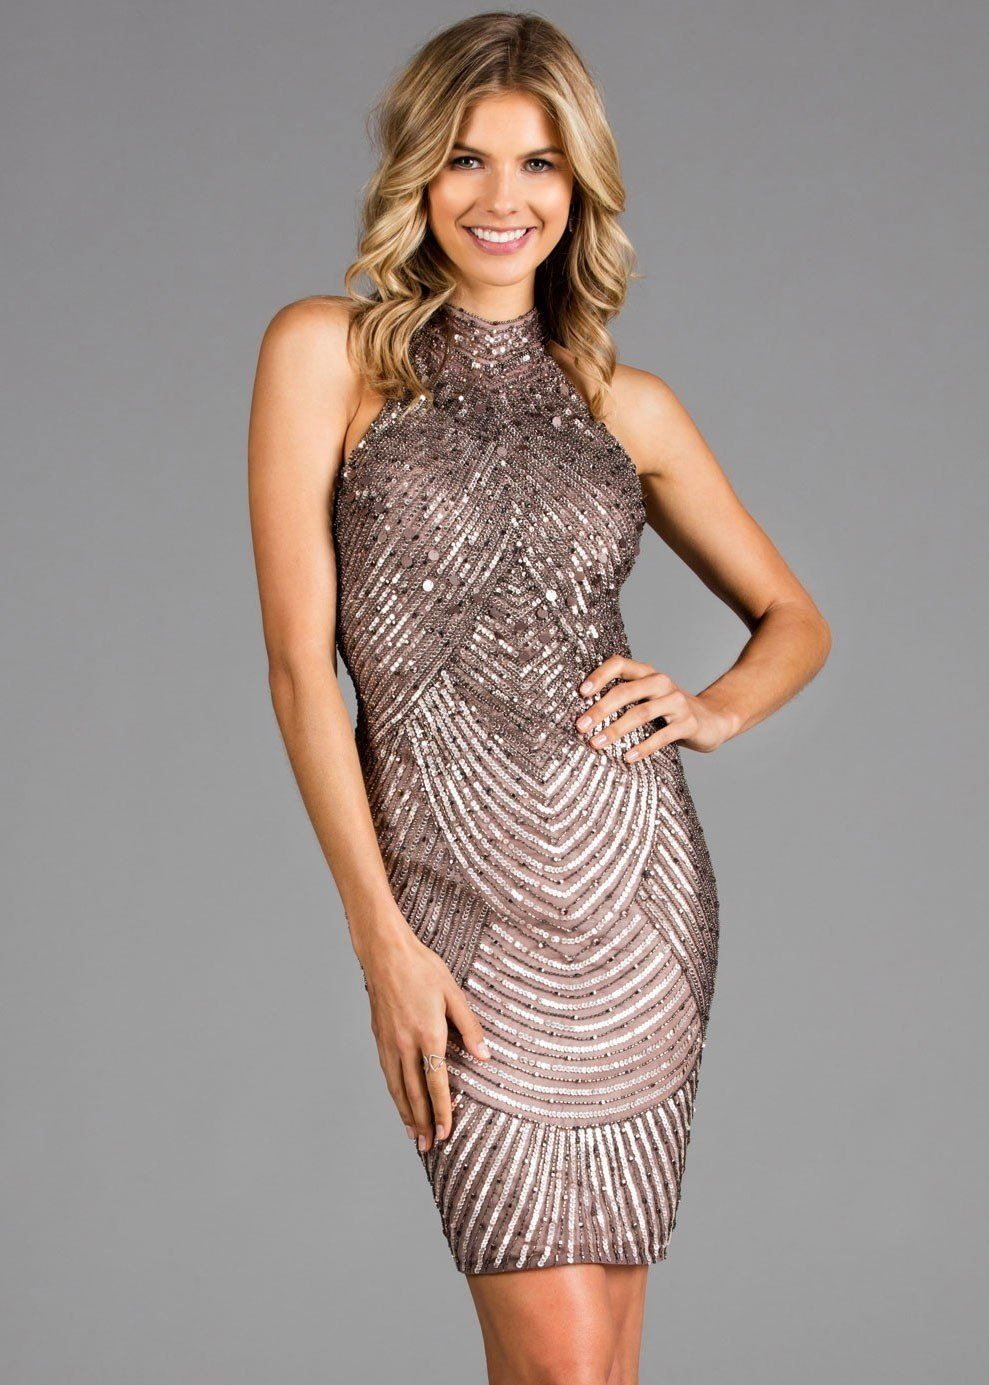 e2e66f853f4 High Neck Beaded   Sequined Cocktail Dress - Scala 48895